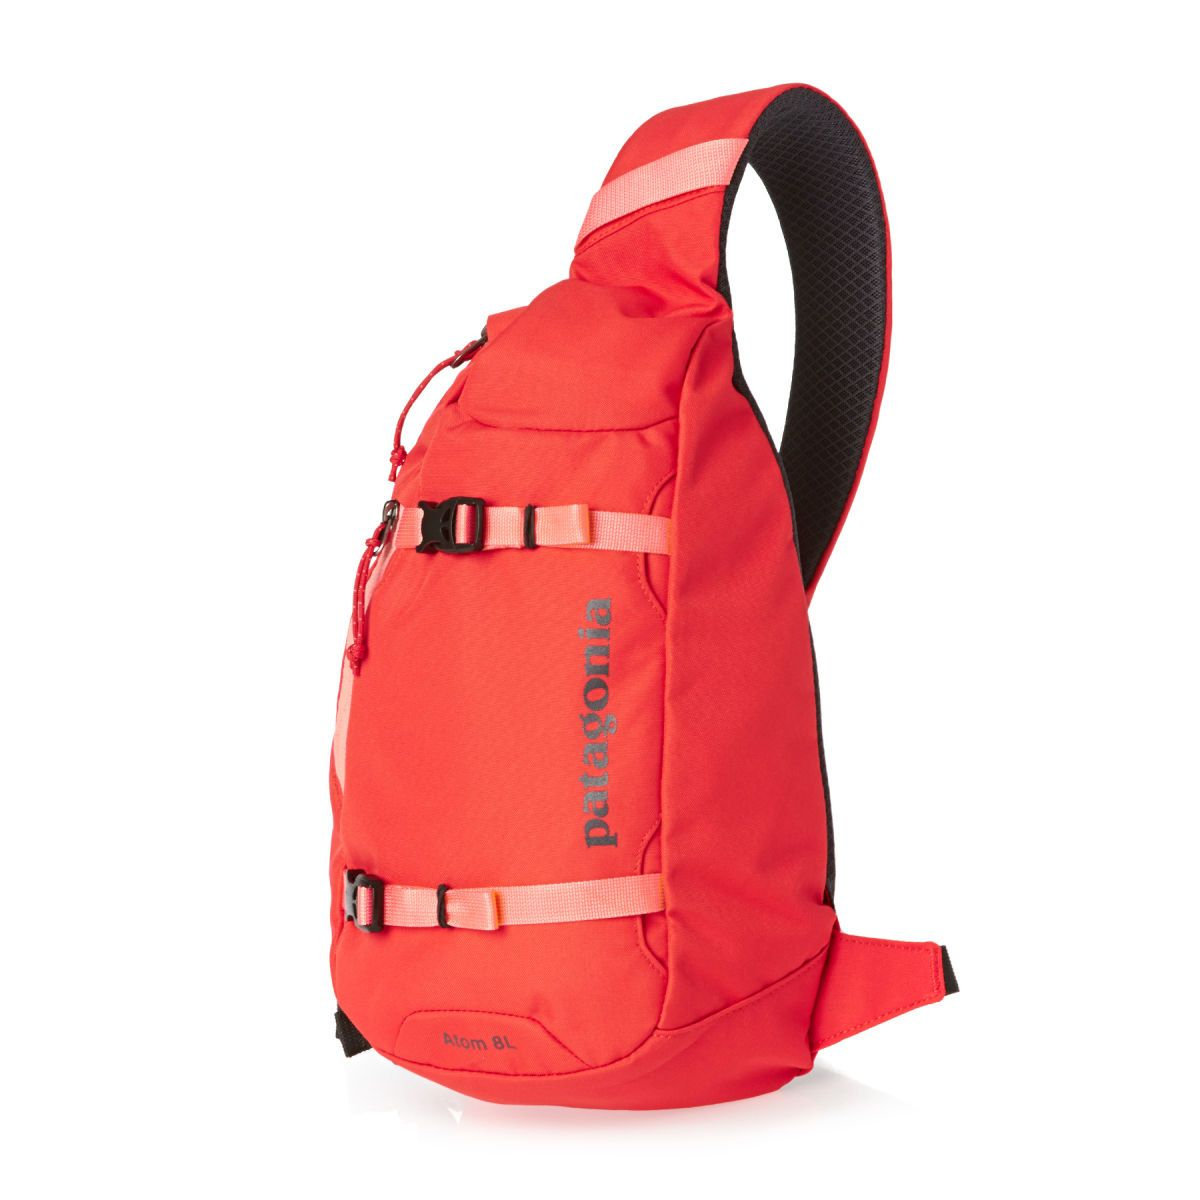 Patagonia Bags - Patagonia Atom Sling Bag - Turkish Red | Disney ...